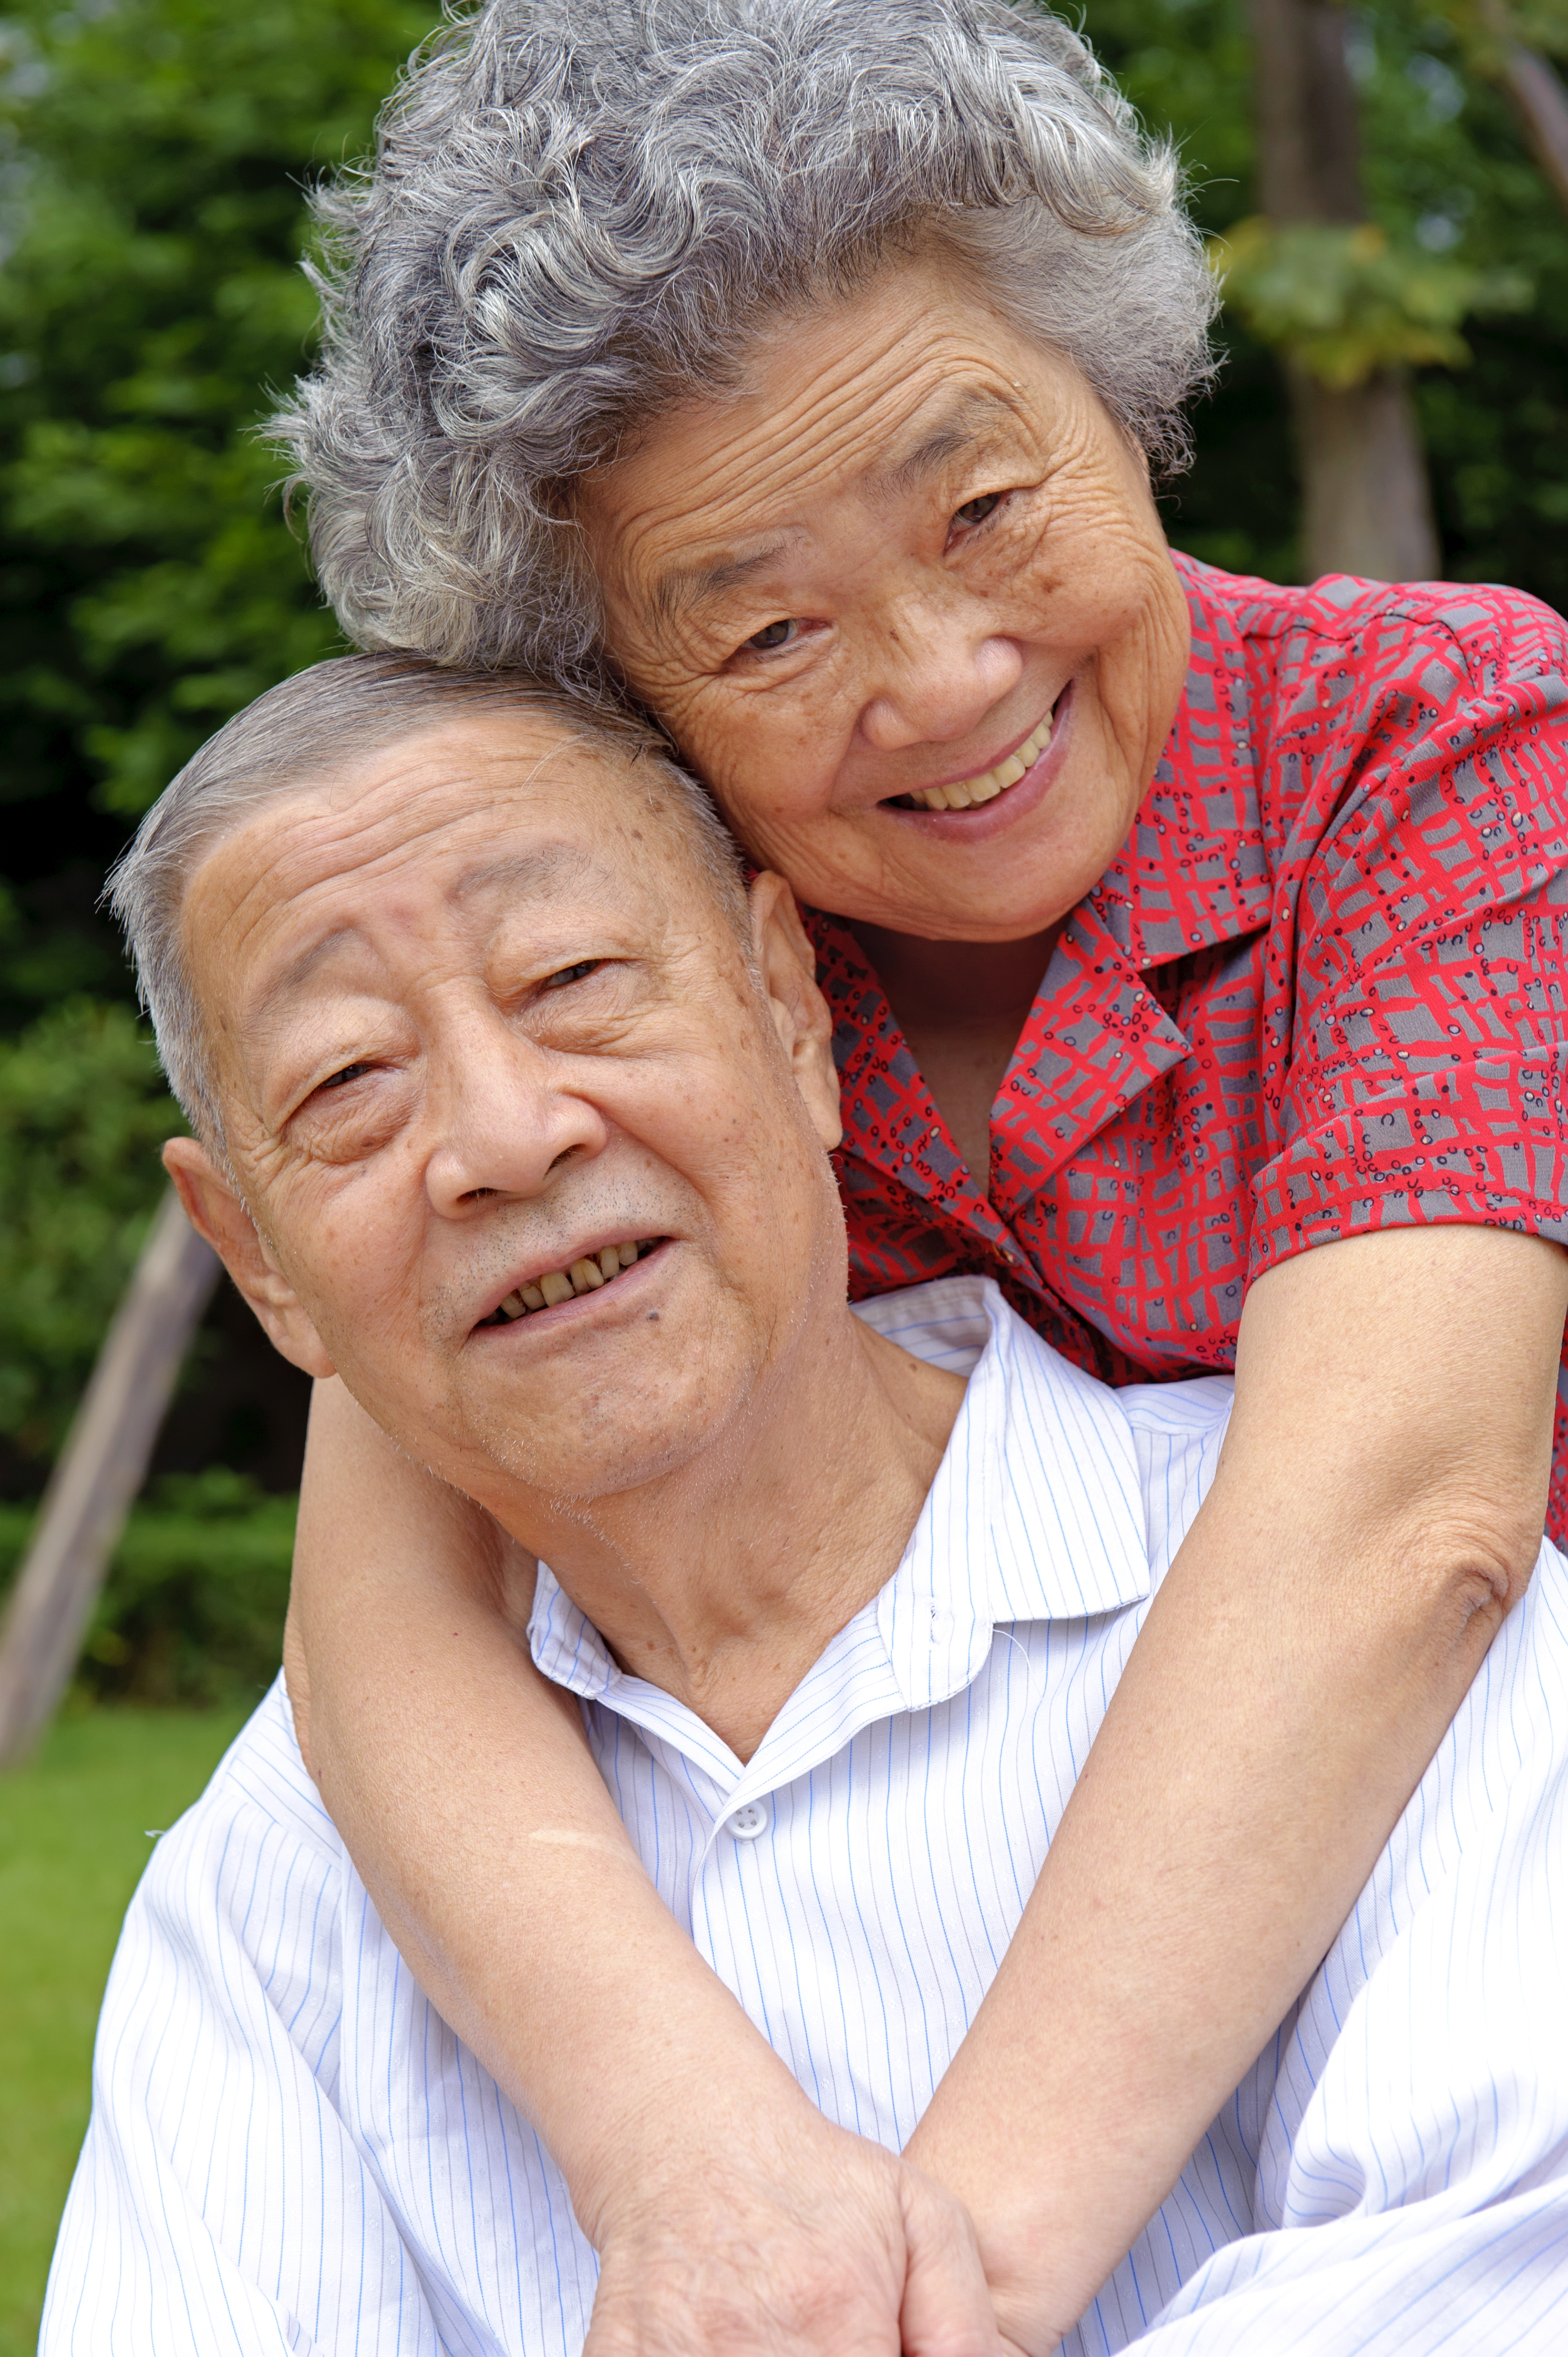 Most Popular Senior Online Dating Websites Free Search